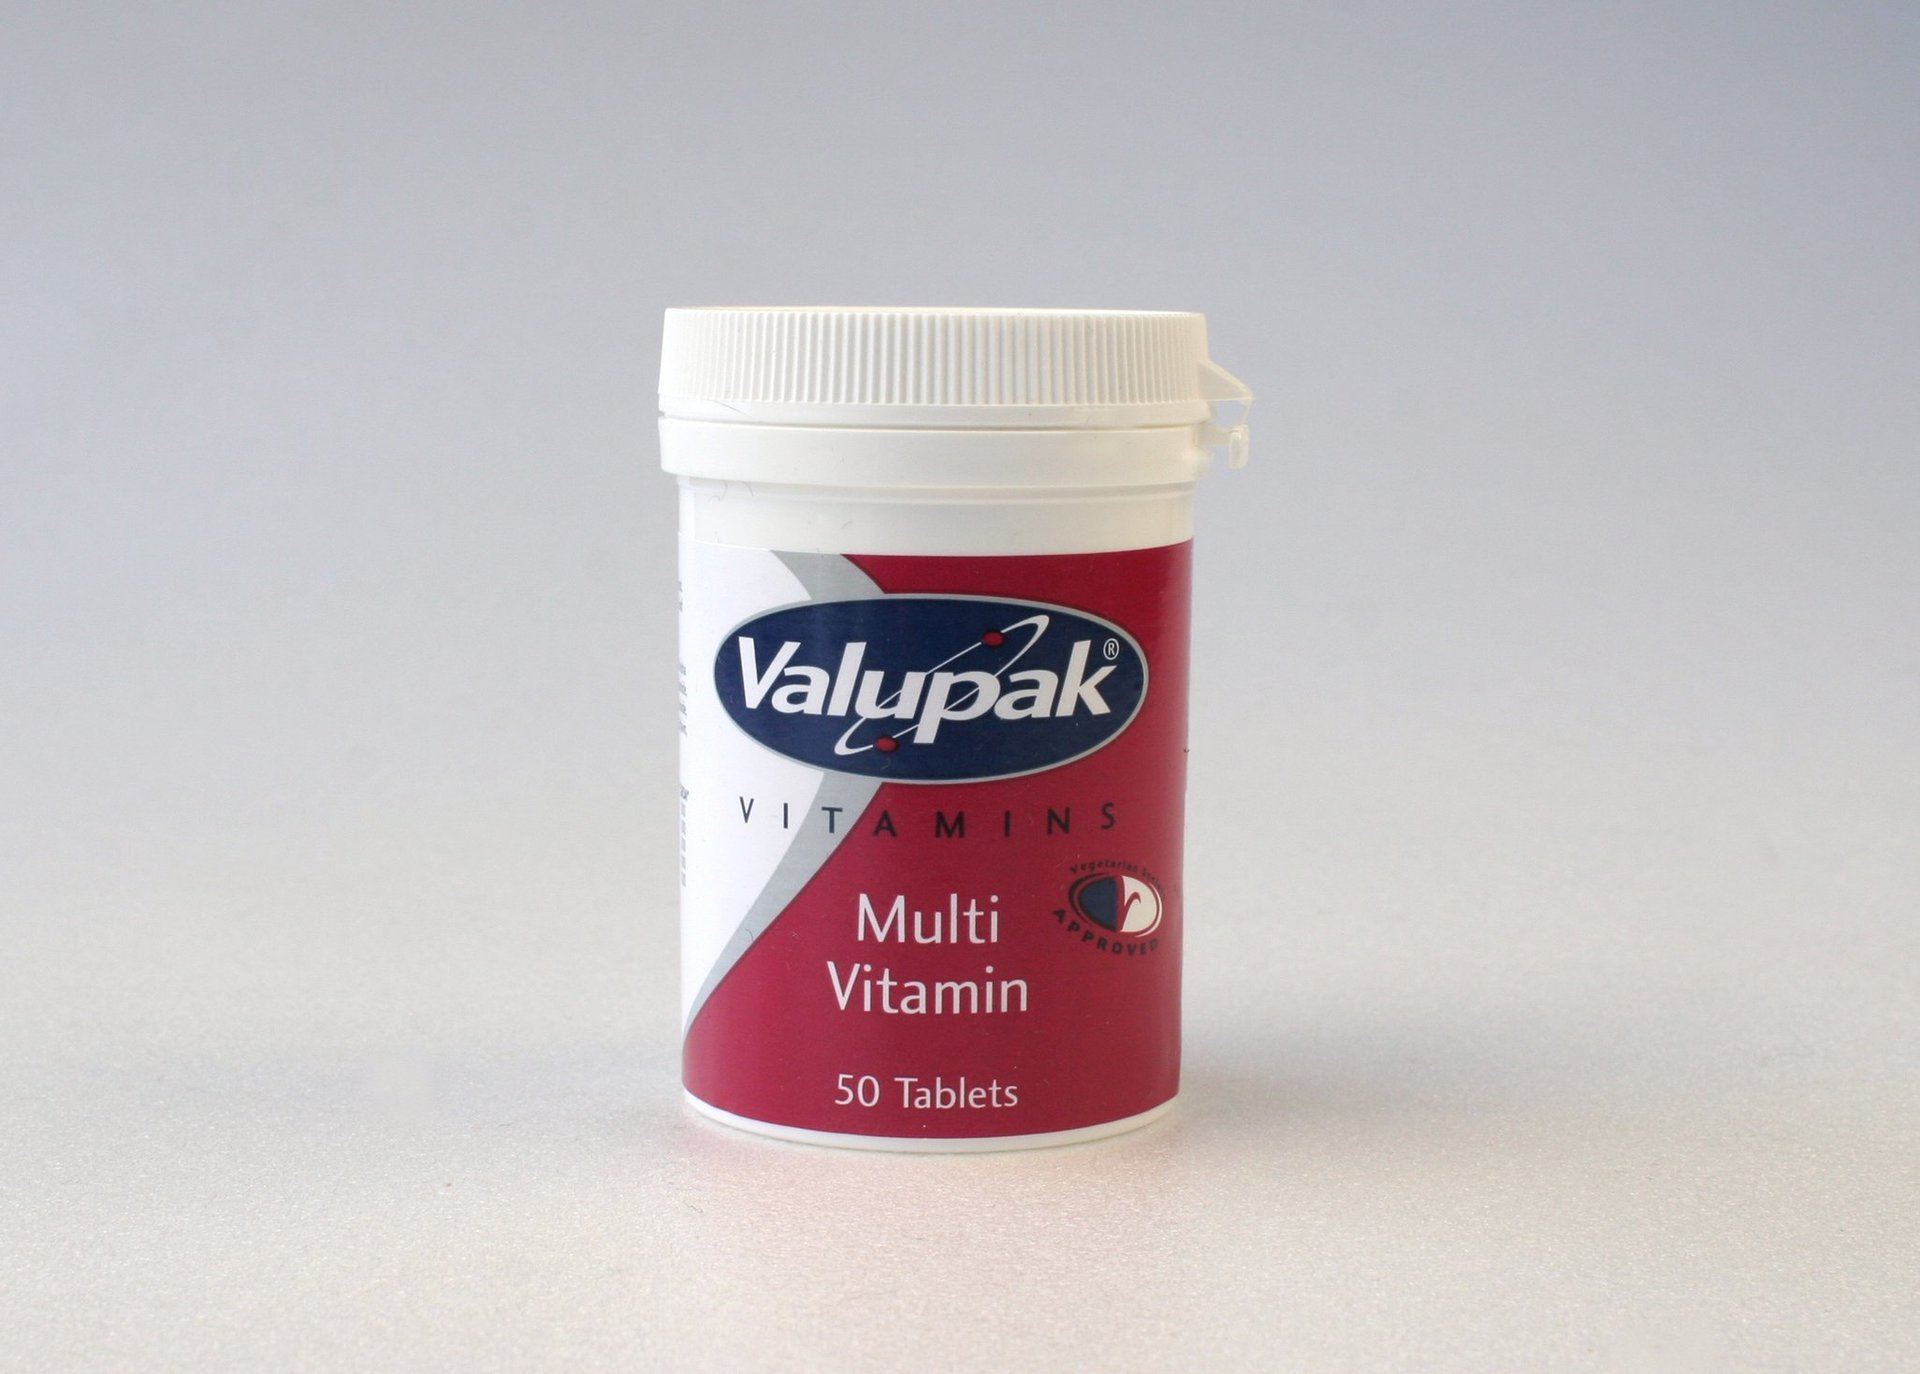 Valupak Multivitamin One-a-day Tablets